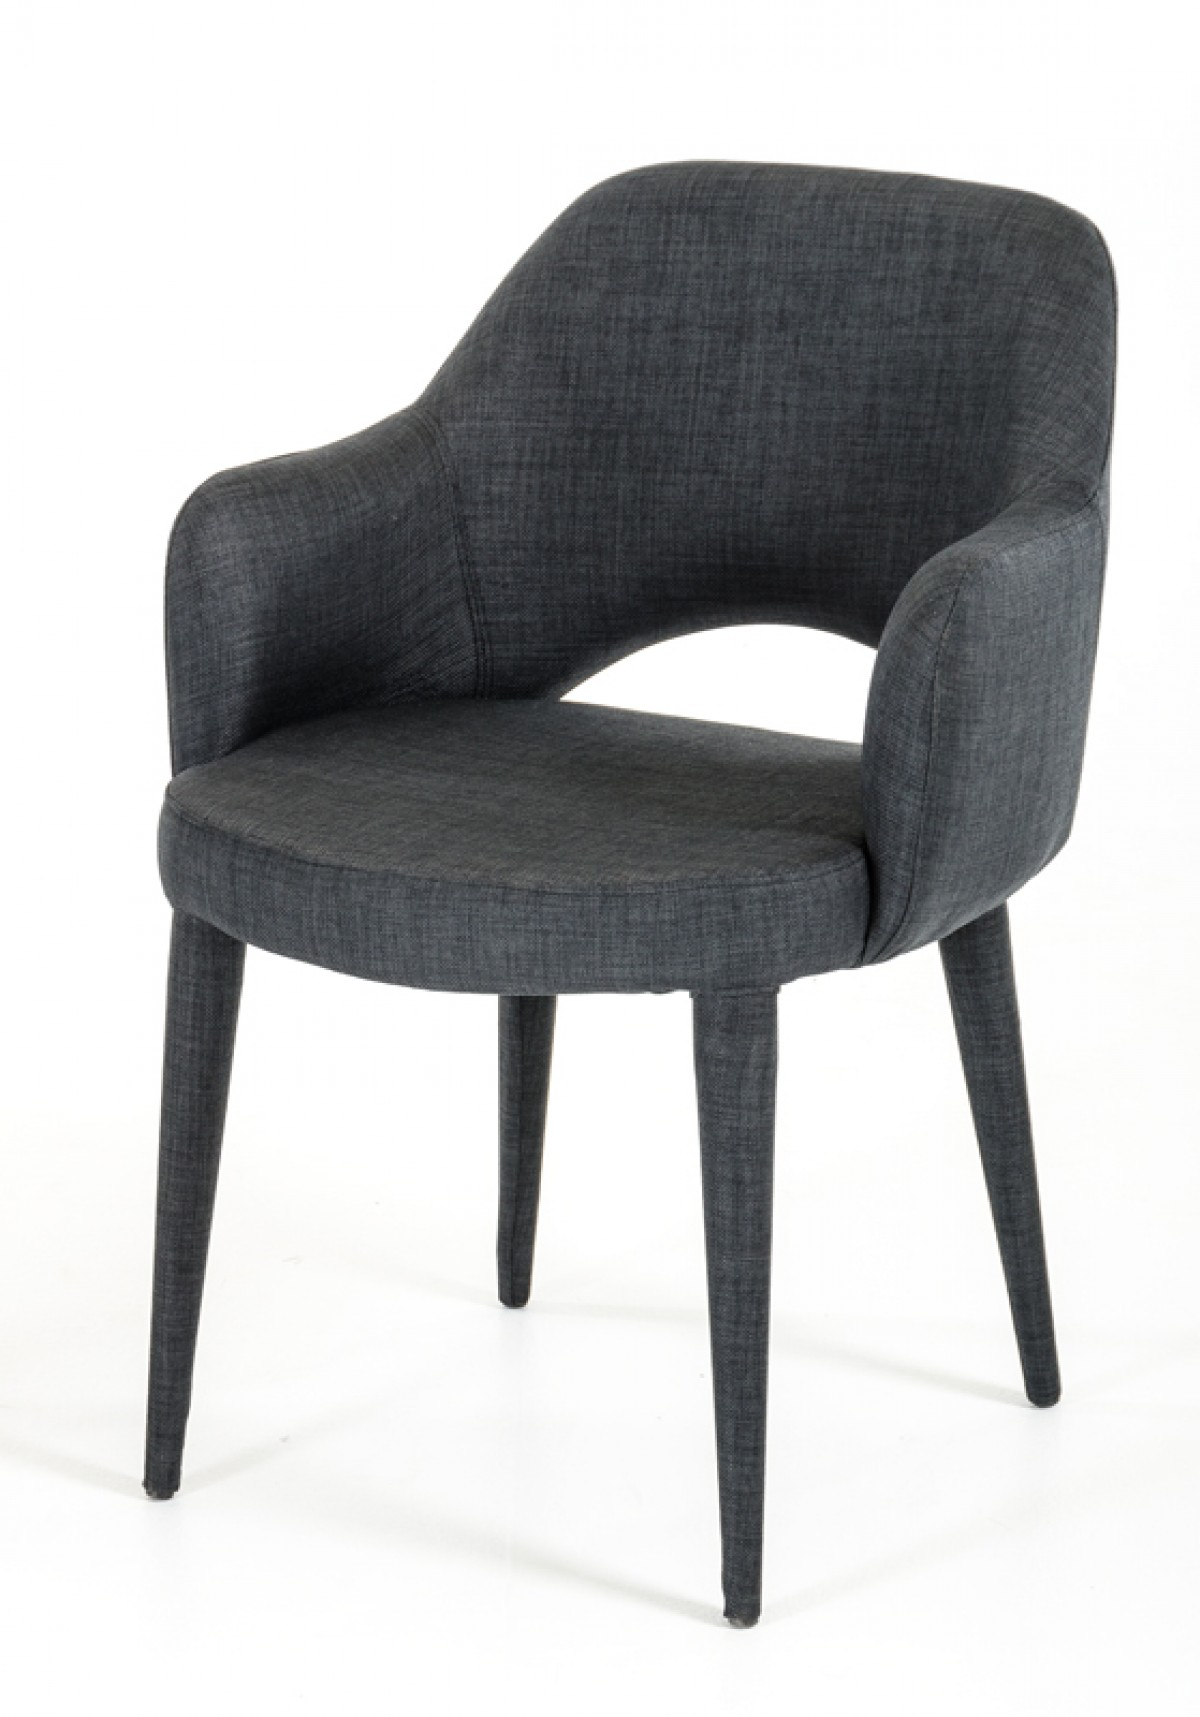 Gray Dining Room Chairs Modrest Williamette Modern Dark Grey Fabric Dining Chair